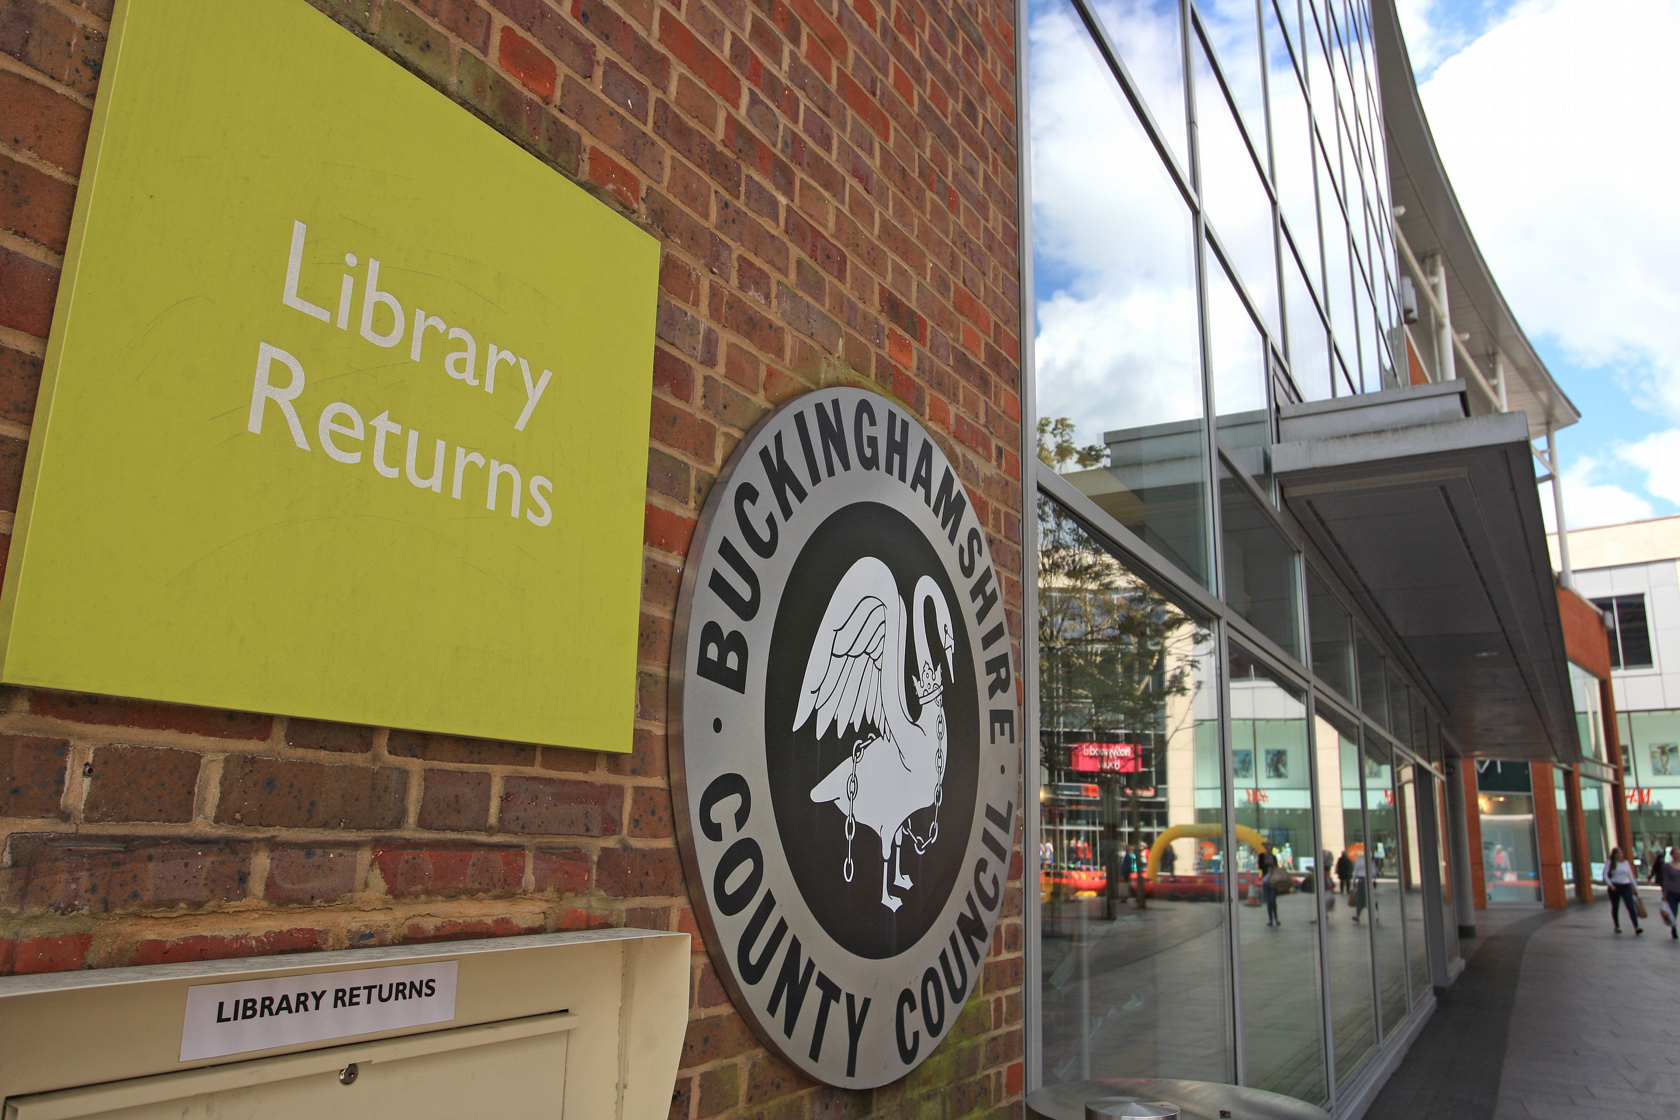 High Wycombe Library could soon be run by not-for-profit groups in a bid to save money